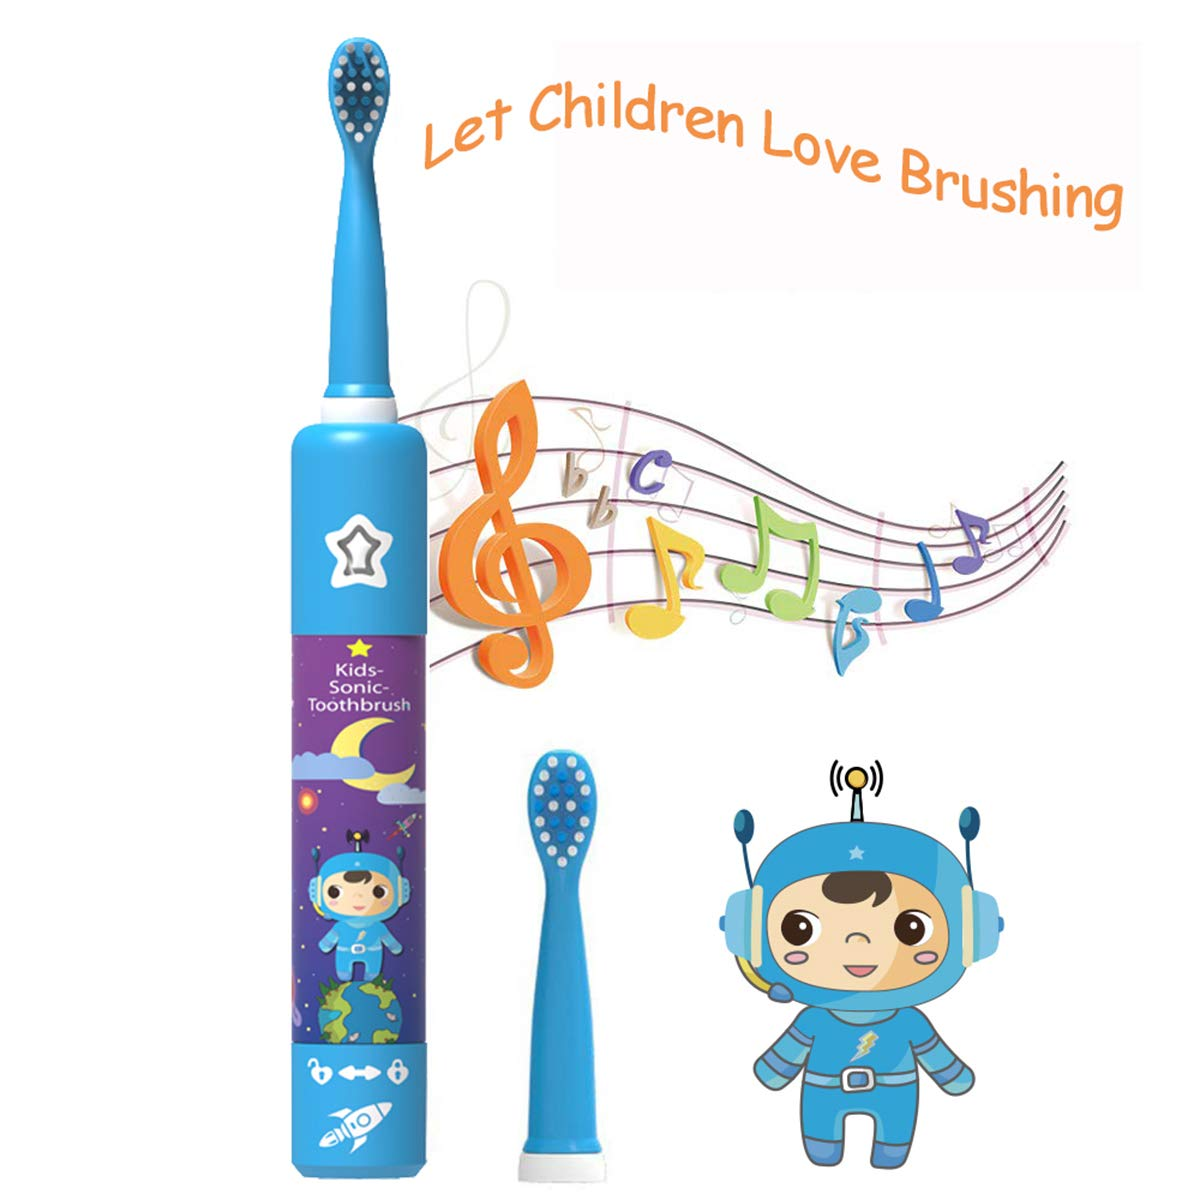 Kids Electric Toothbrush Rechargeable USB Charging Powered Up to 30 Days,  Smart Timer 3 Modes Waterproof Travel Sonic Toothbrushes 2 Brush Heads Soft.